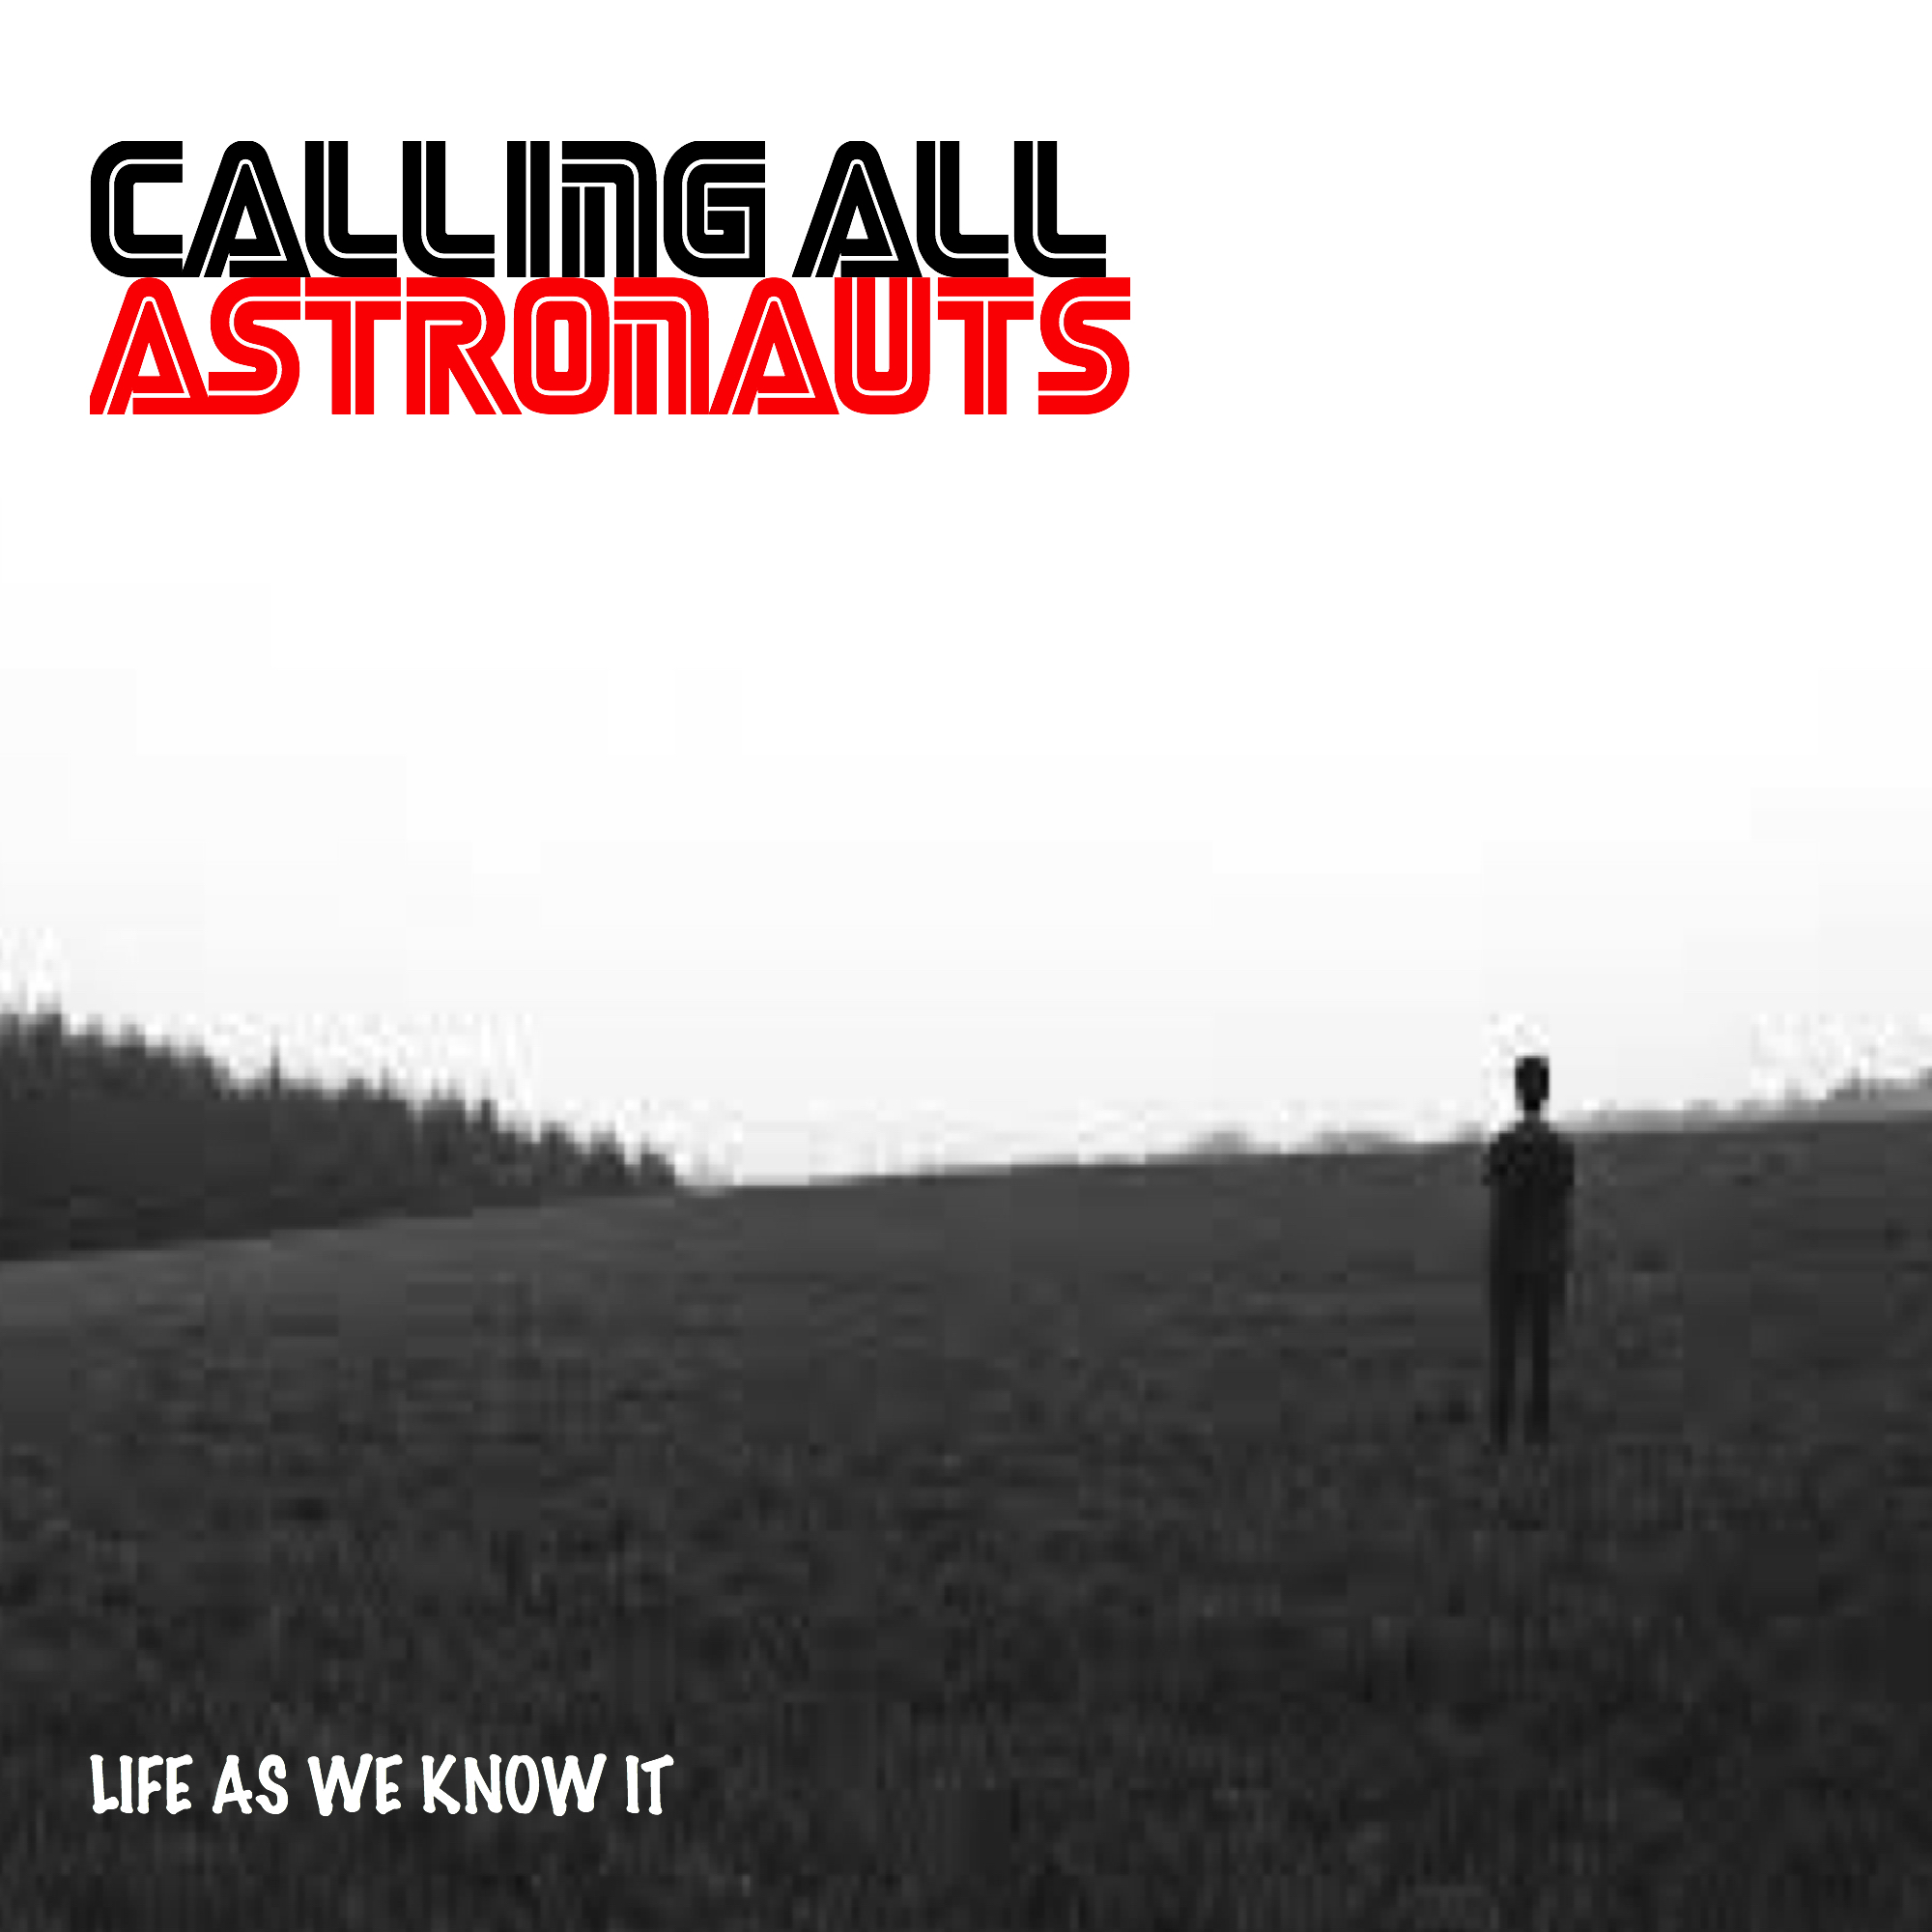 Calling All Astronauts - Life As We Know It